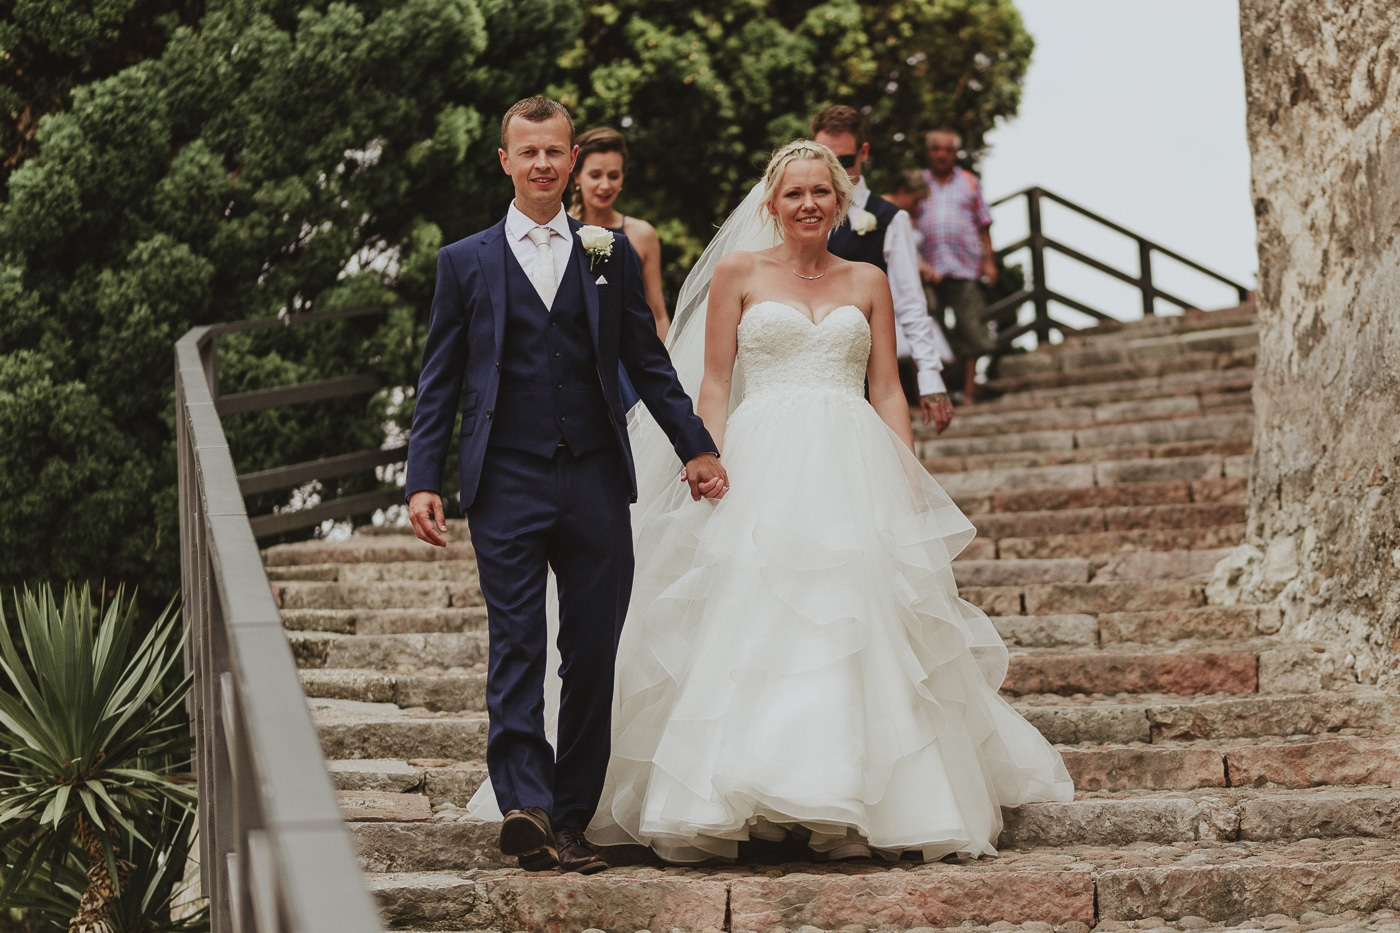 Bride and groom walking down the stone stairs with other wedding guests behind them and metal railings and trees in the background